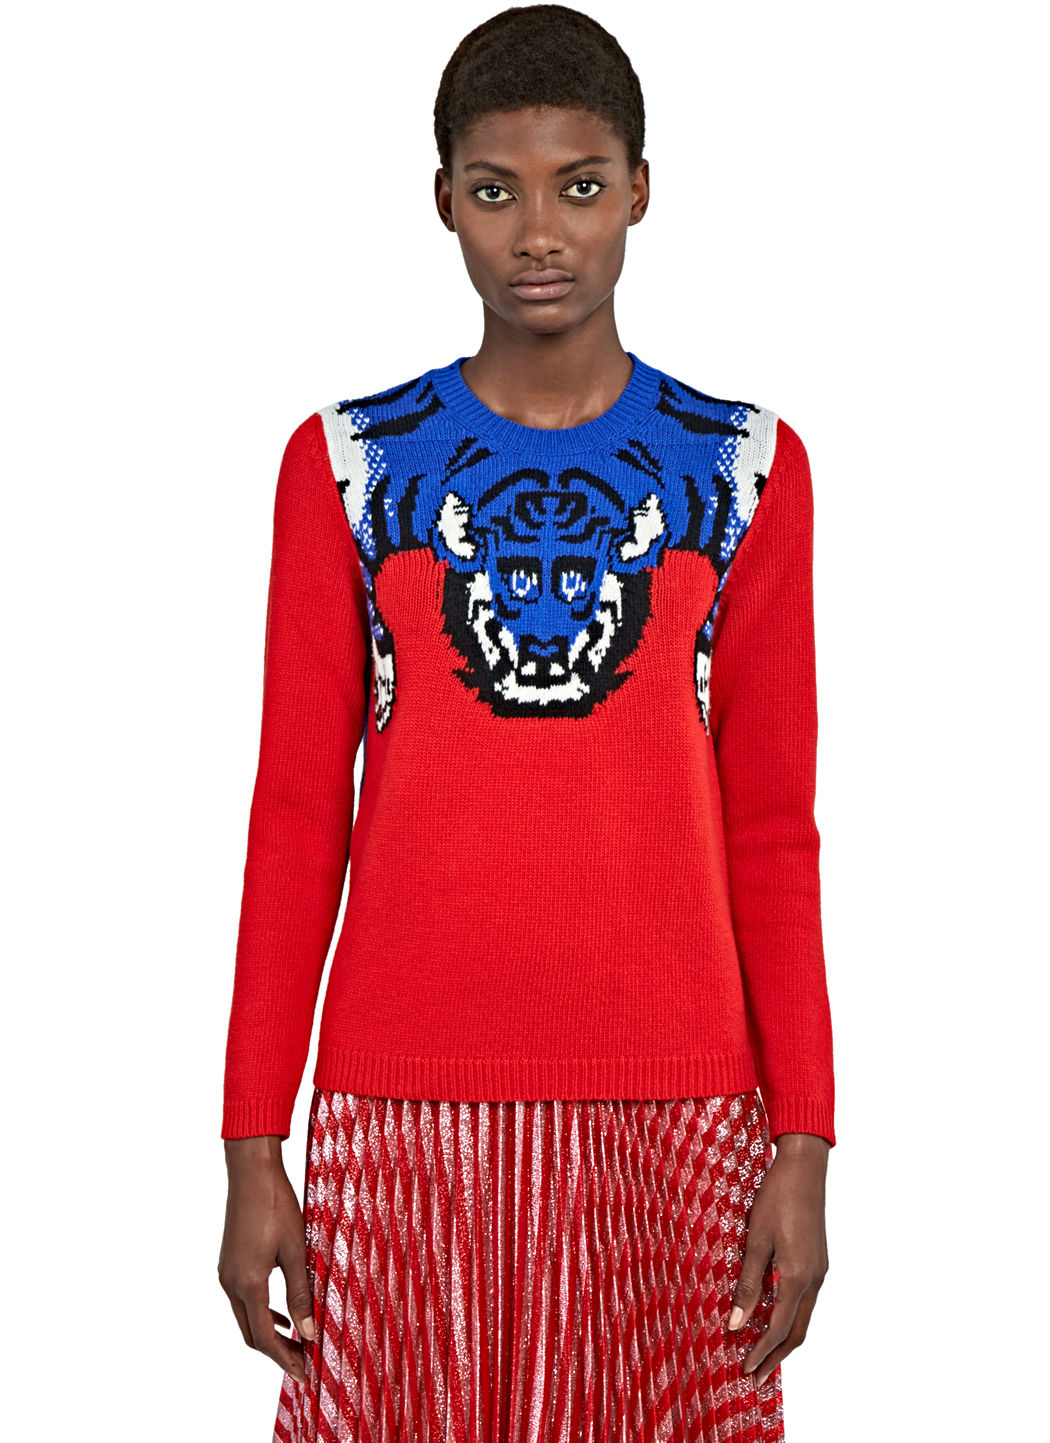 GUCCI Women'S Tiger Knit Crew Neck Sweater In Red And Blue at LN-CC